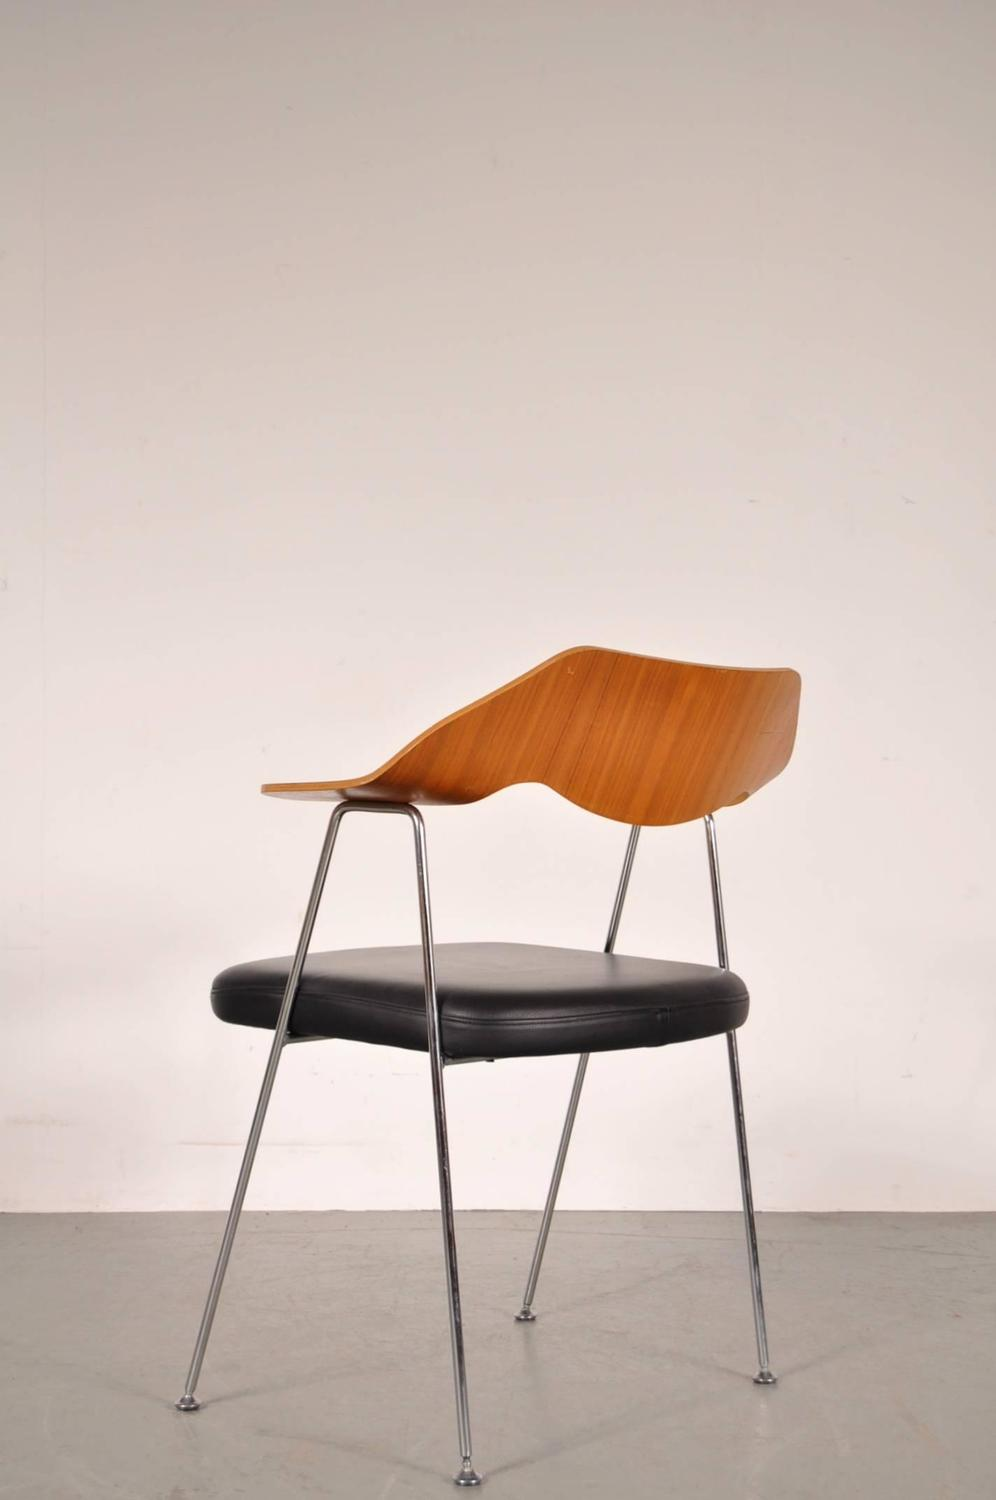 Desk Side Chair By Robin Day For Hille UK Circa 1950 For Sale At 1stdibs